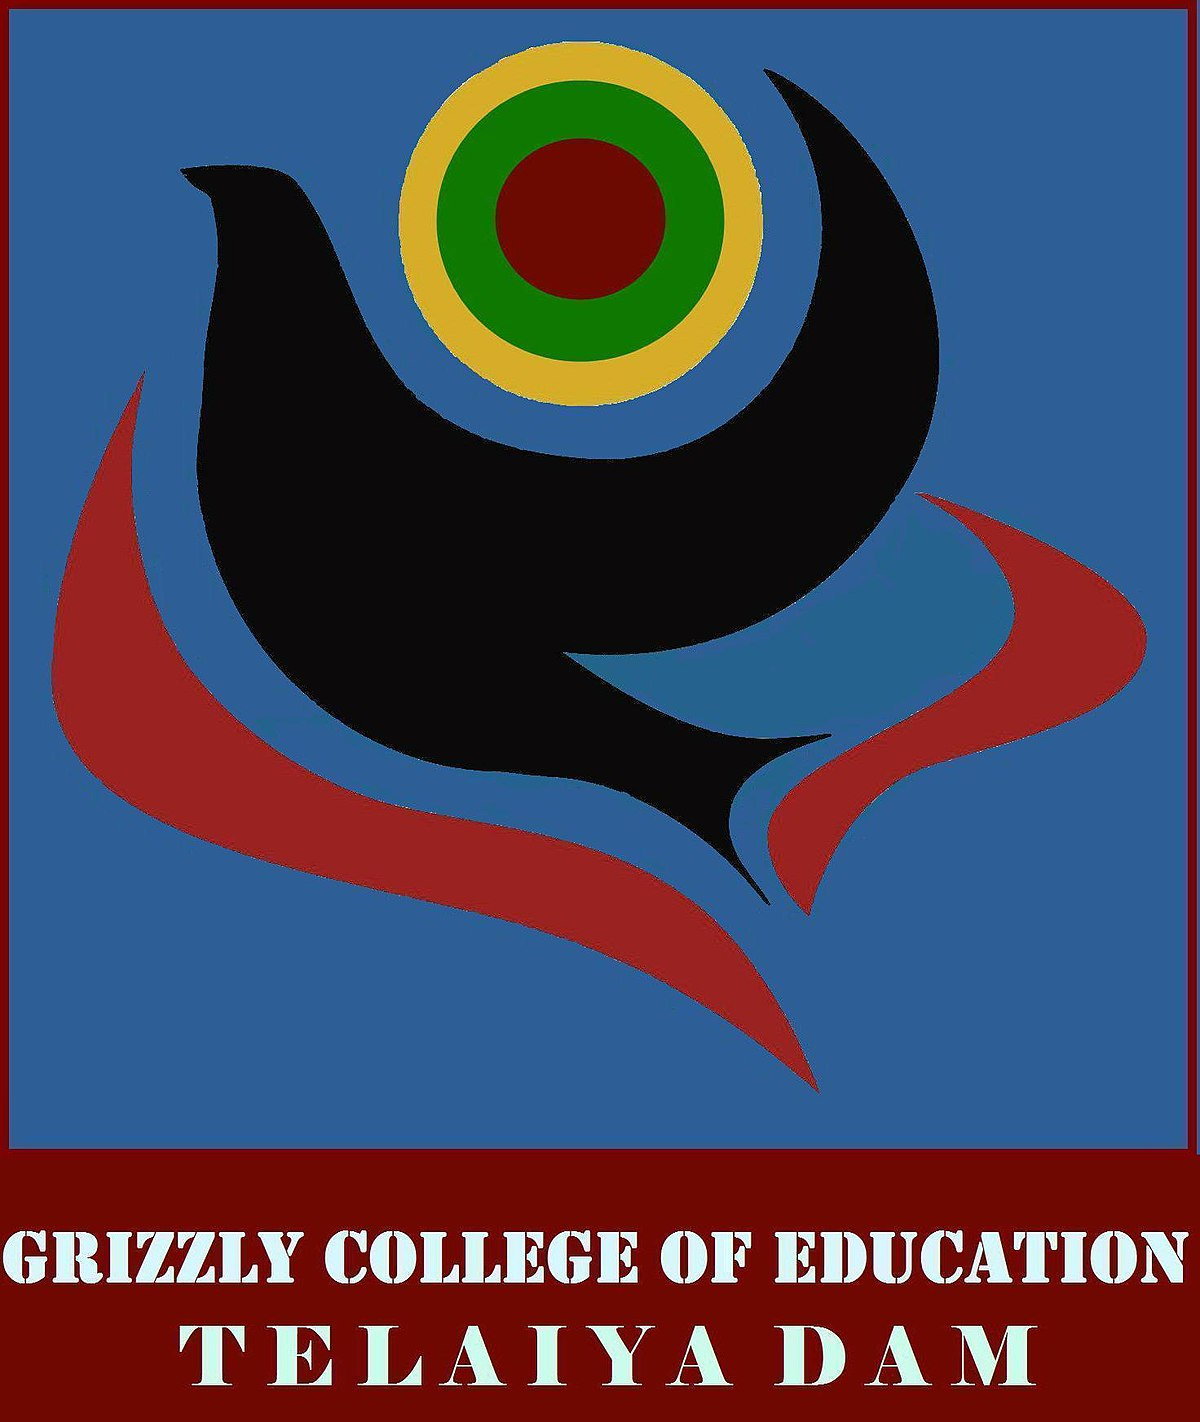 College Of Education: Grizzly College Of Education